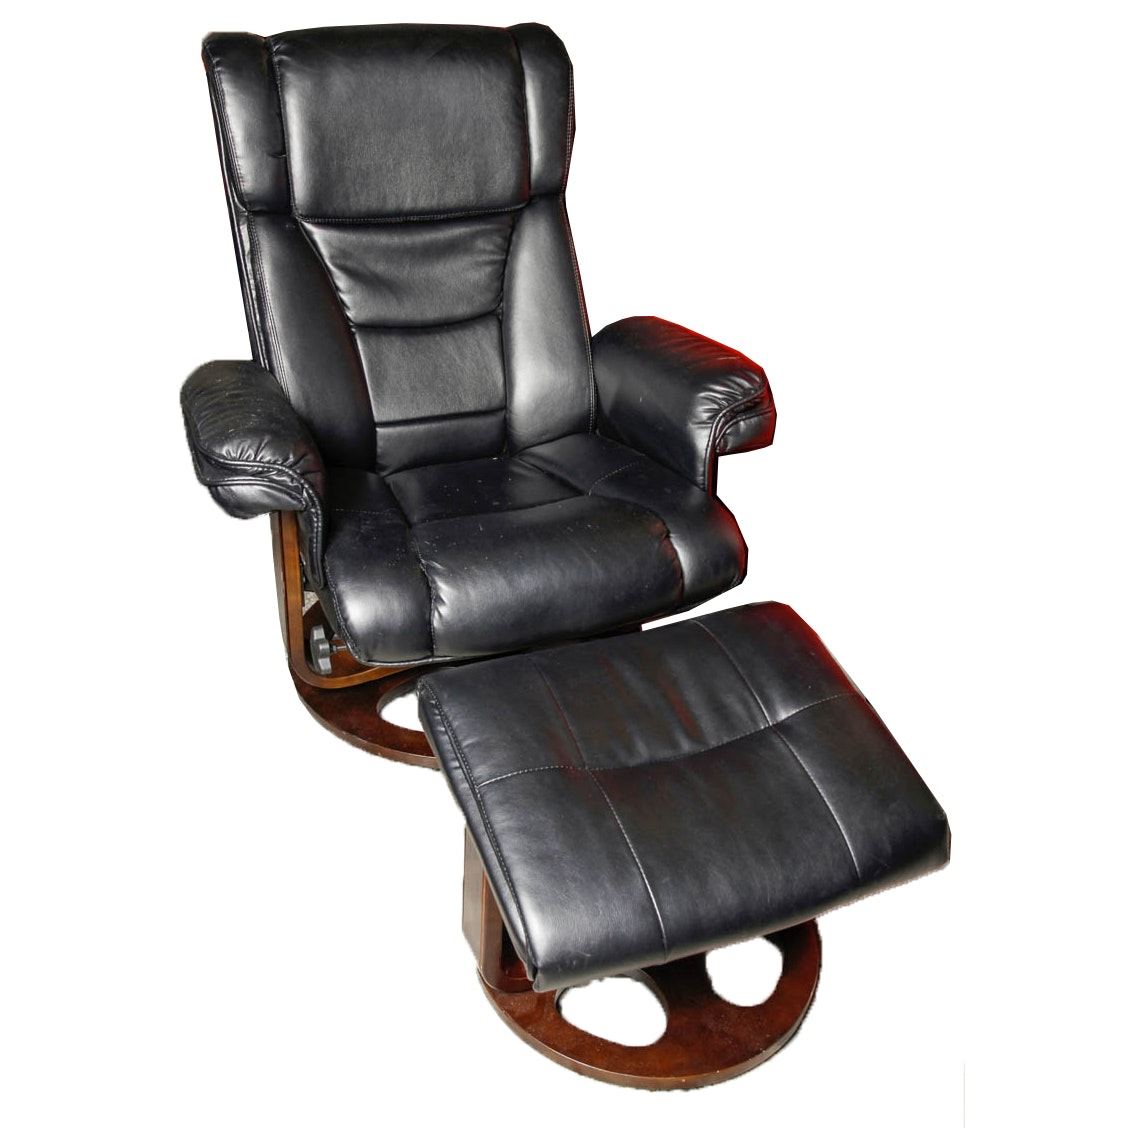 Faux Leather Reclining Chair and Ottoman